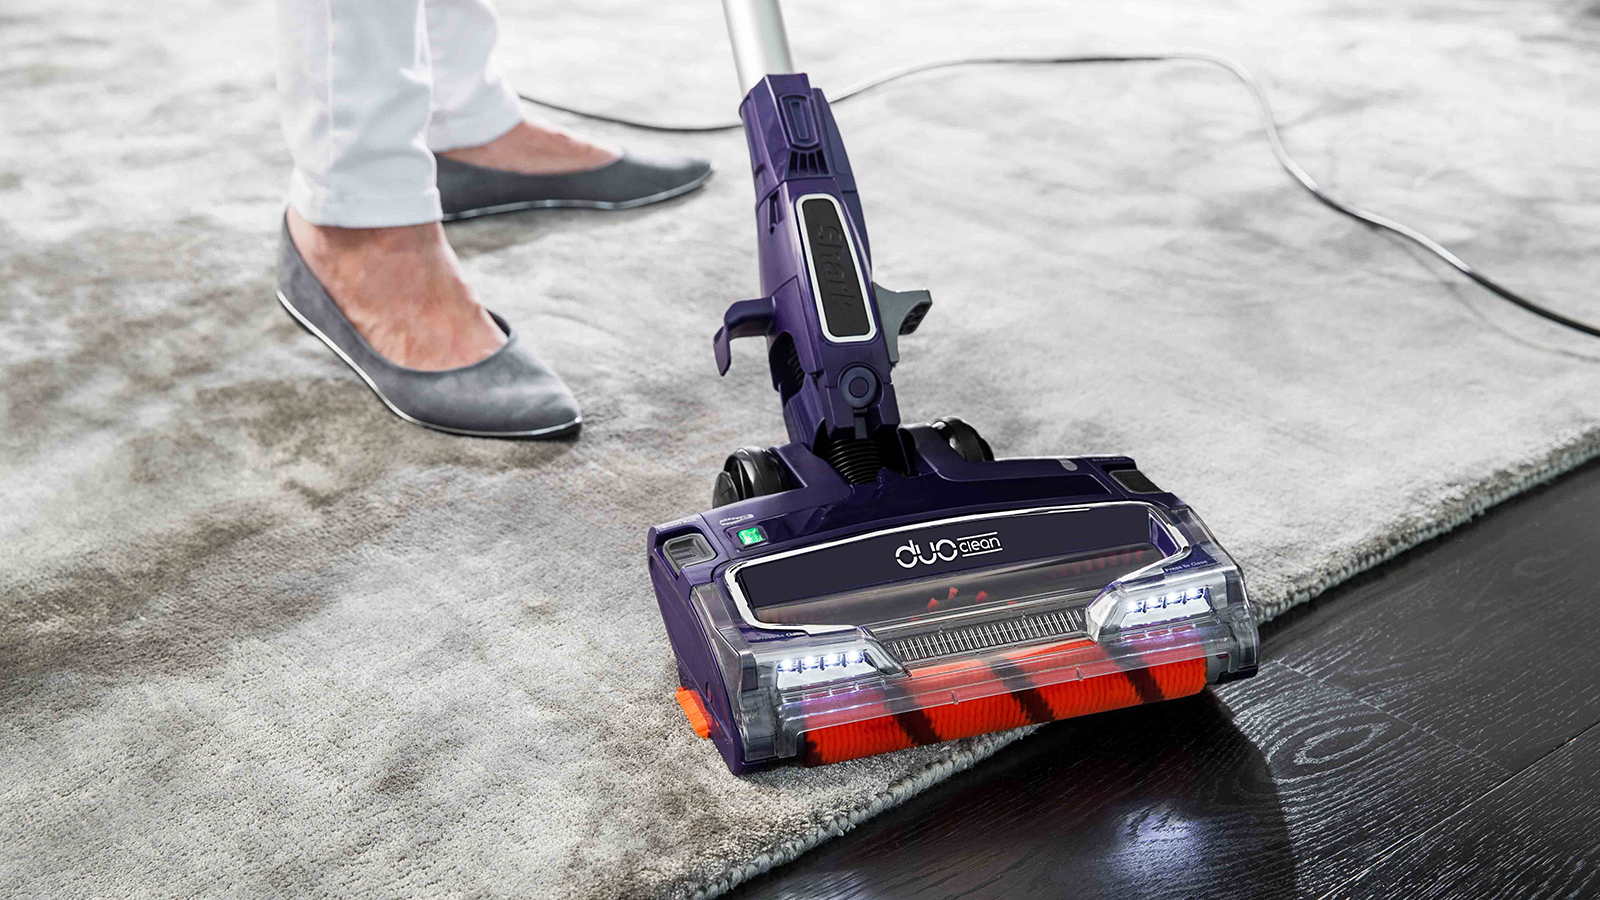 Carpet & Hard Floor Cleaning with Shark DuoClean Corded Stick Vacuum Cleaner